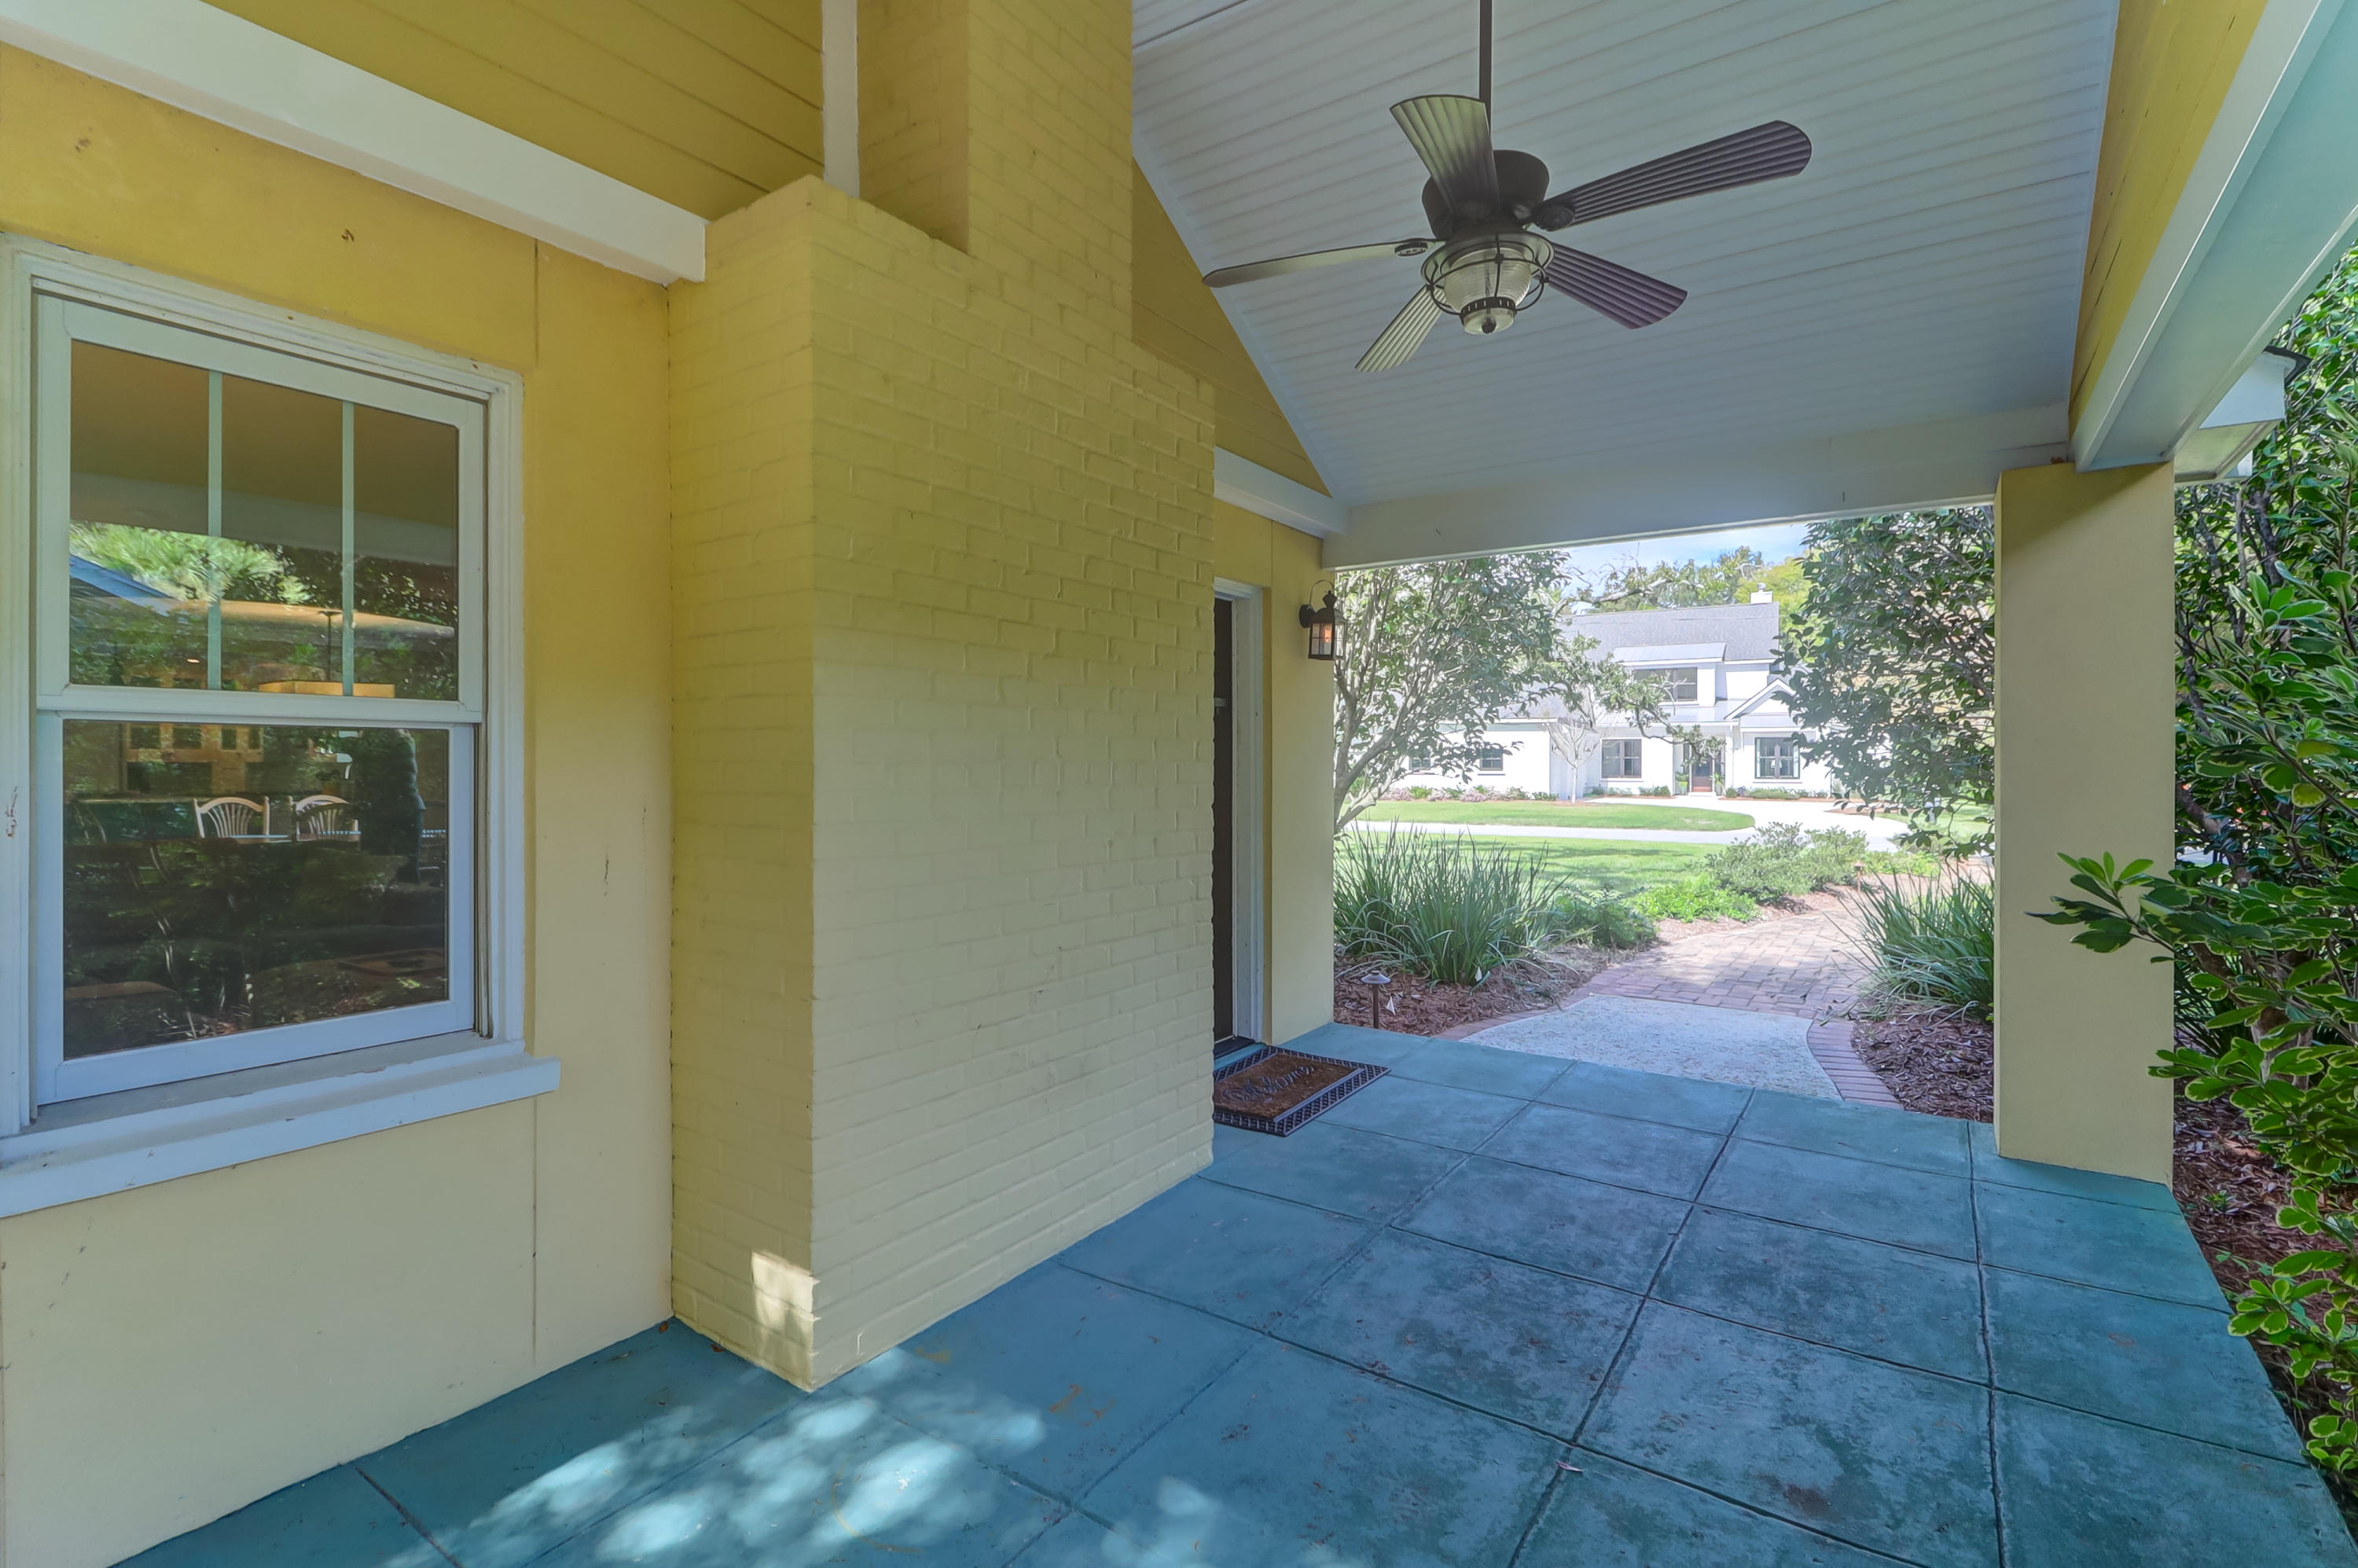 Old Mt Pleasant Homes For Sale - 661 Ferry, Mount Pleasant, SC - 10